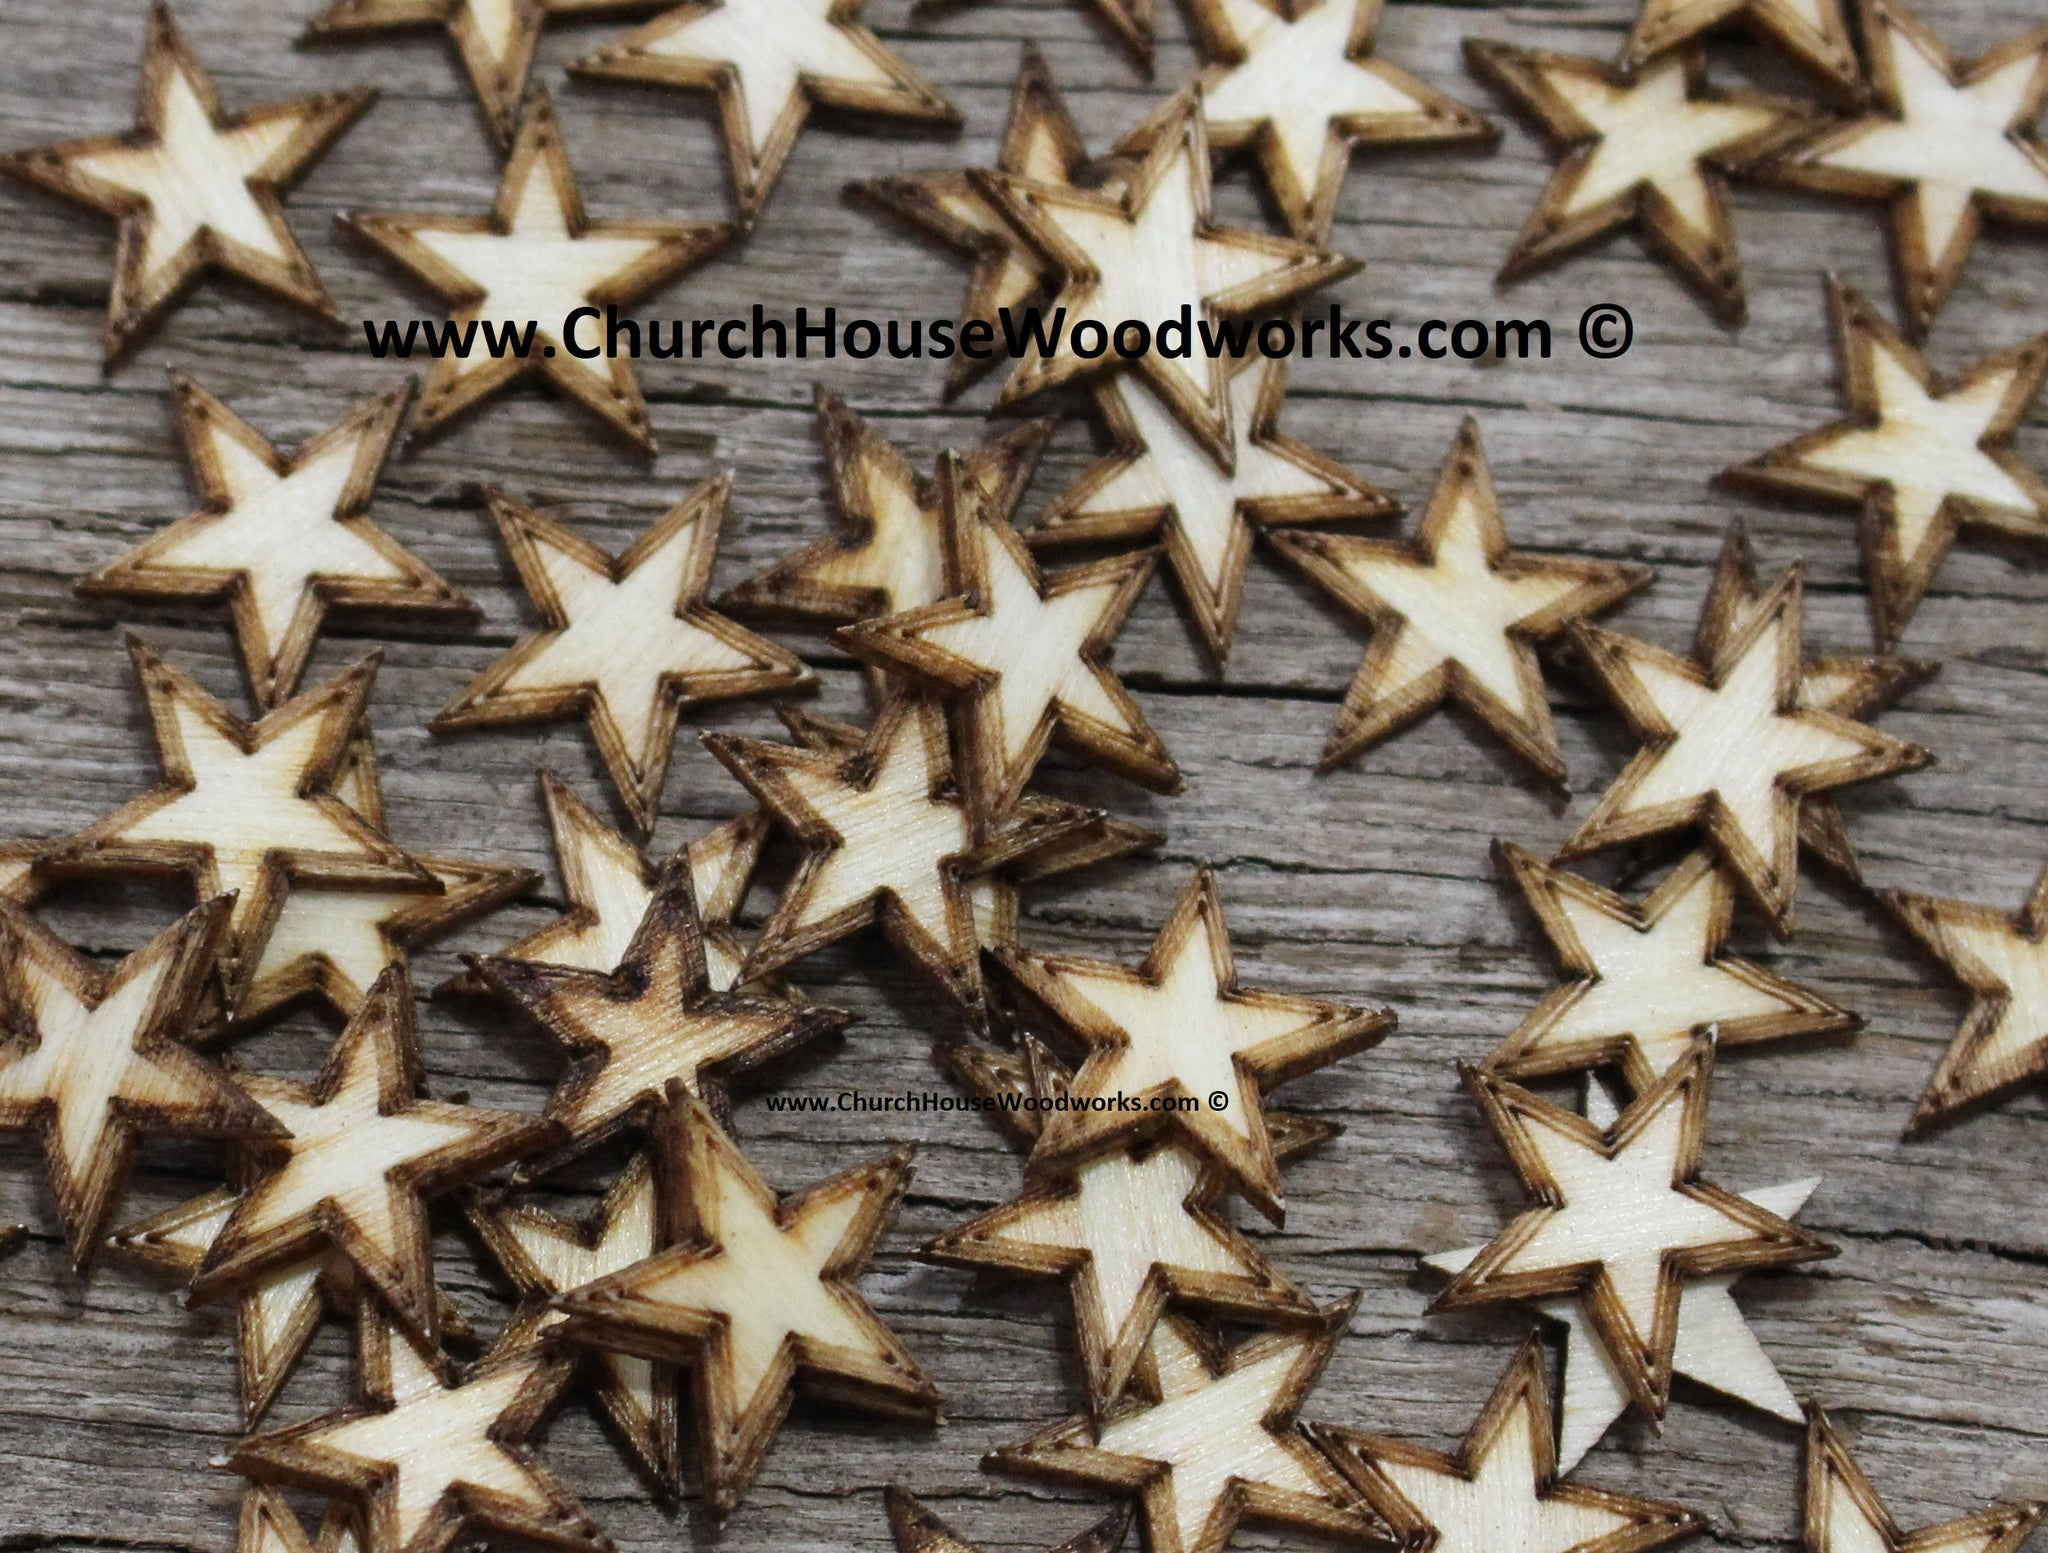 50 qty 1/2 inch Stars with BORDER Tiny Laser Cut Mini Wood Stars Half inch - Rustic Decor - Wooden Stars- DIY Craft Supplies 13mm Wood Flag